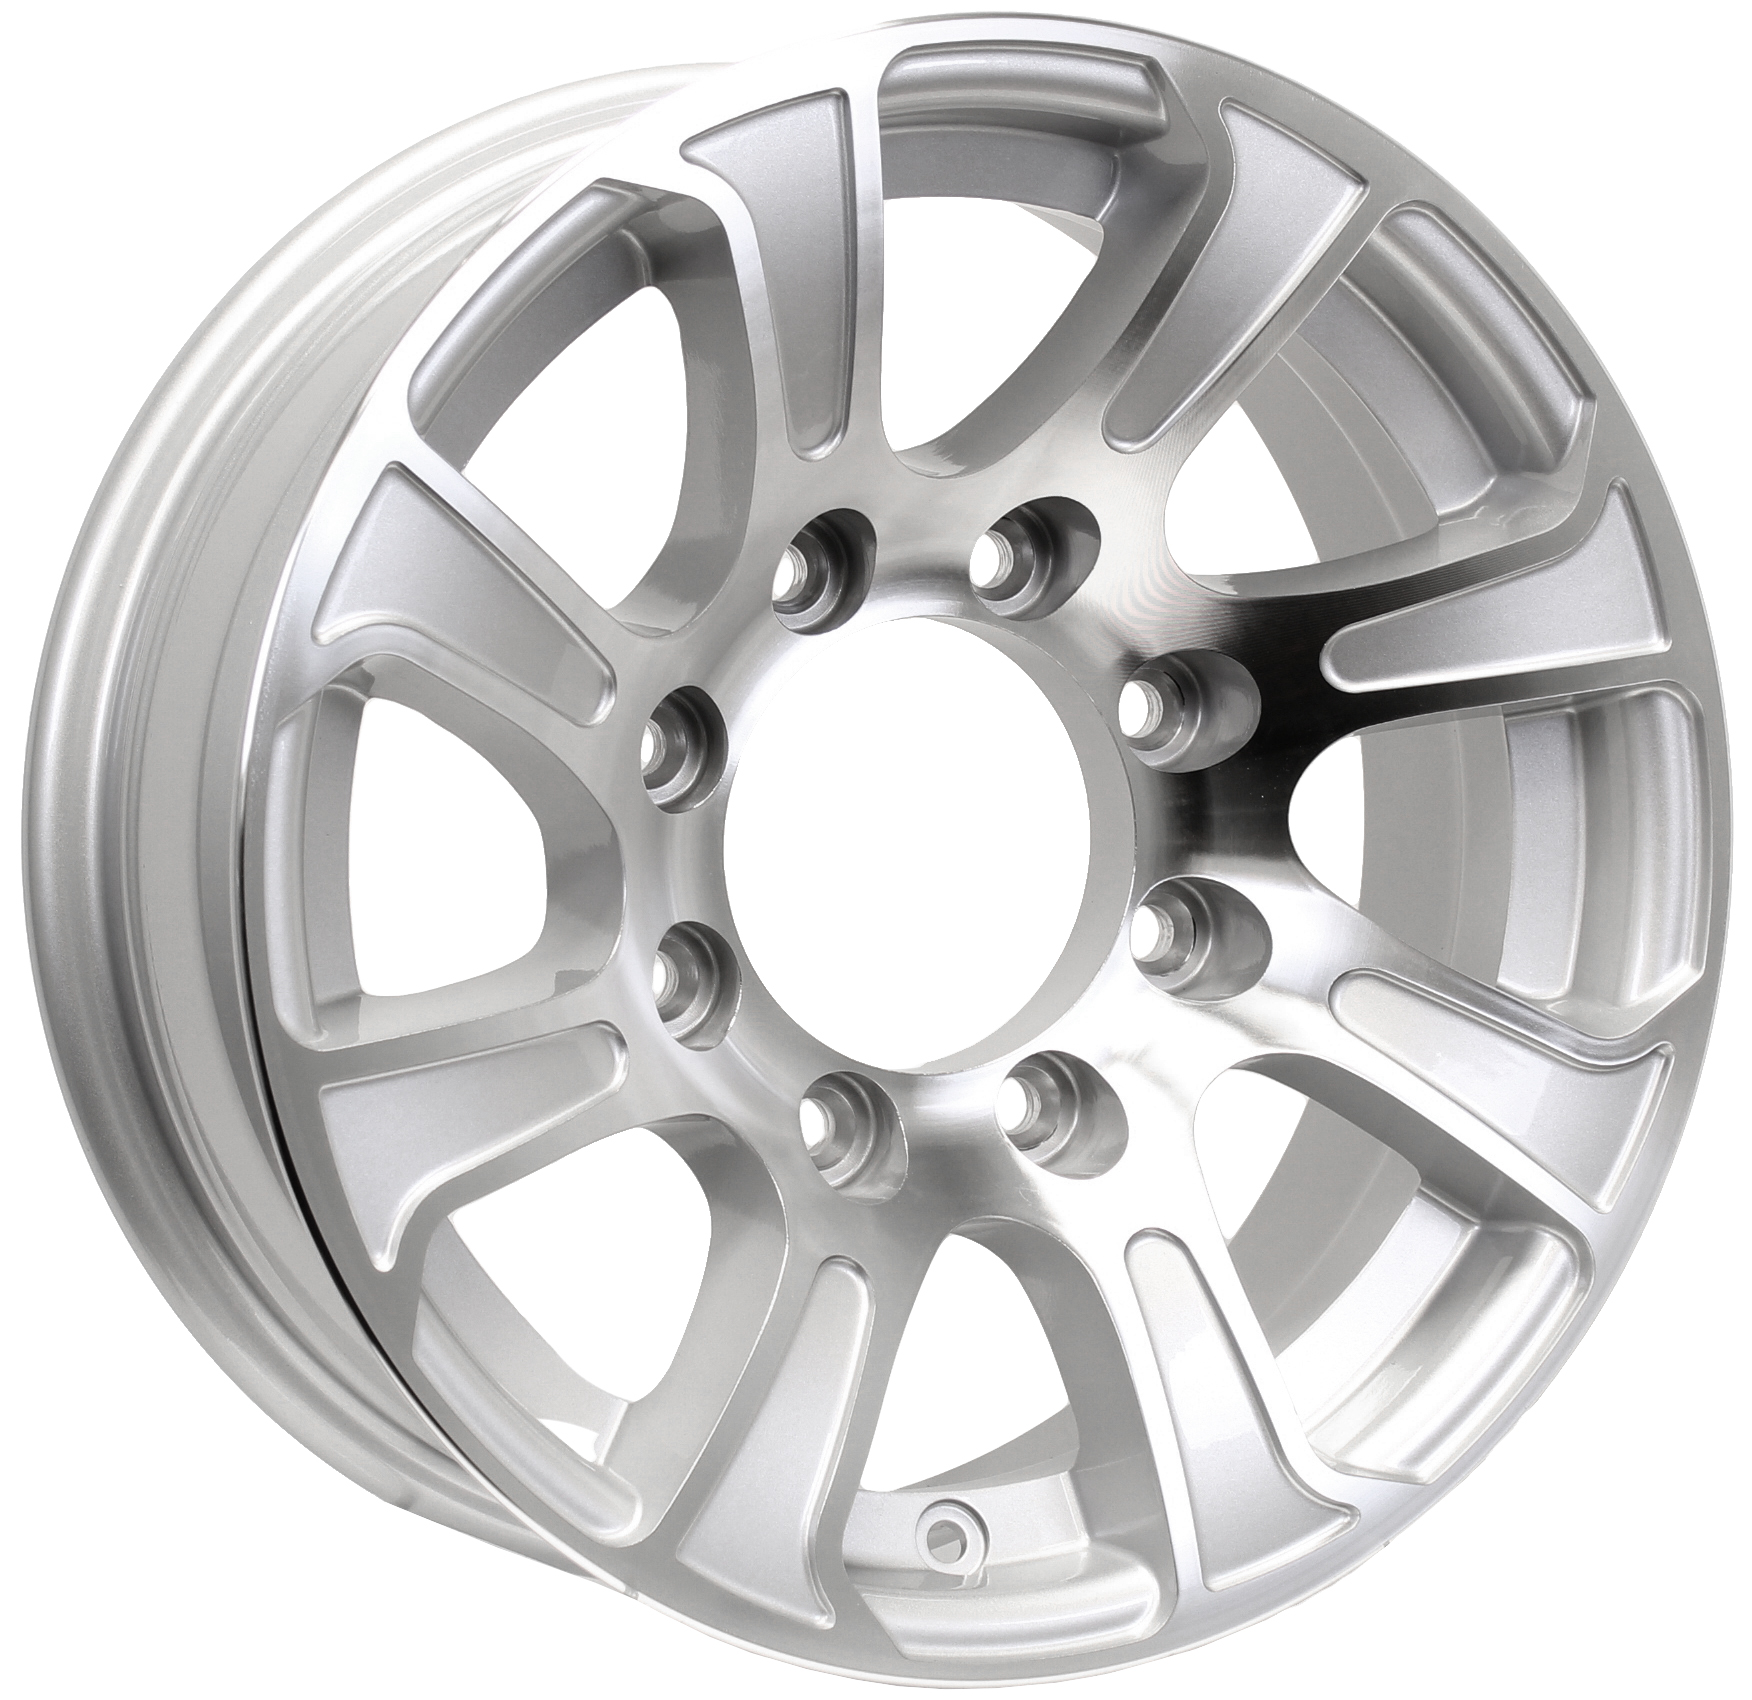 Summit 16x6; 8-Lug Silver Aluminum Trailer Wheel Image